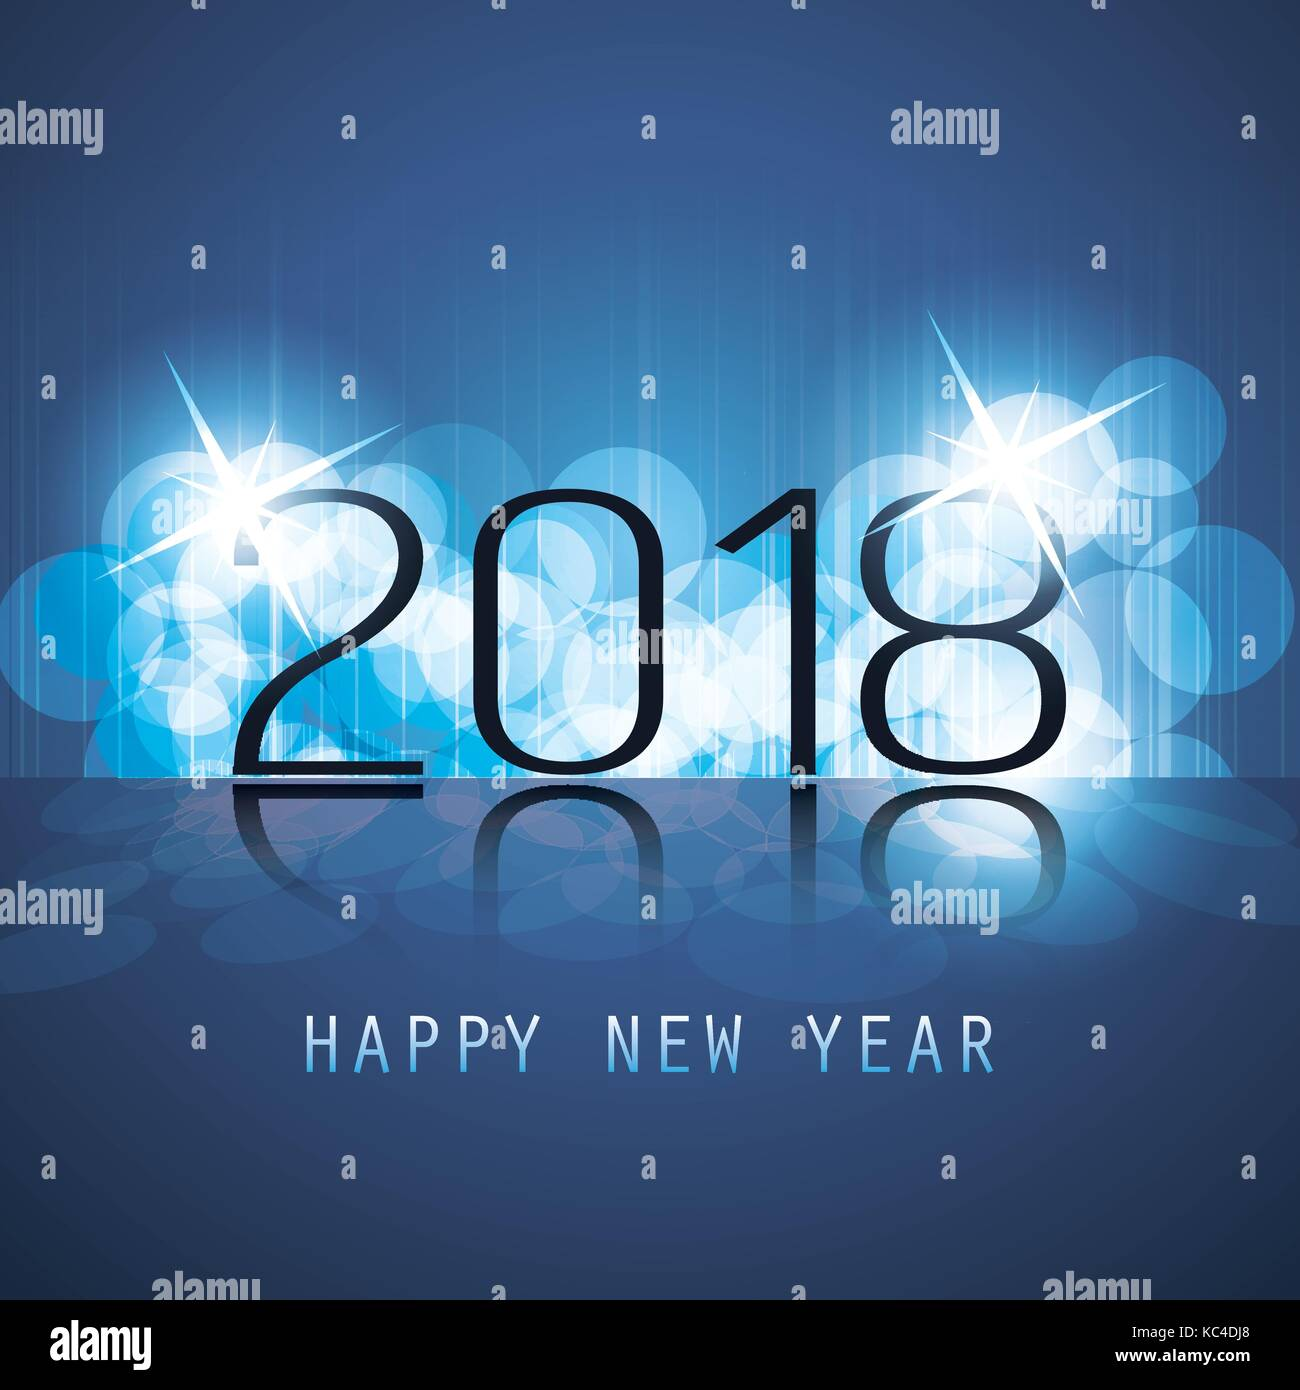 best wishes abstract modern style happy new year greeting card or background creative design template 2018